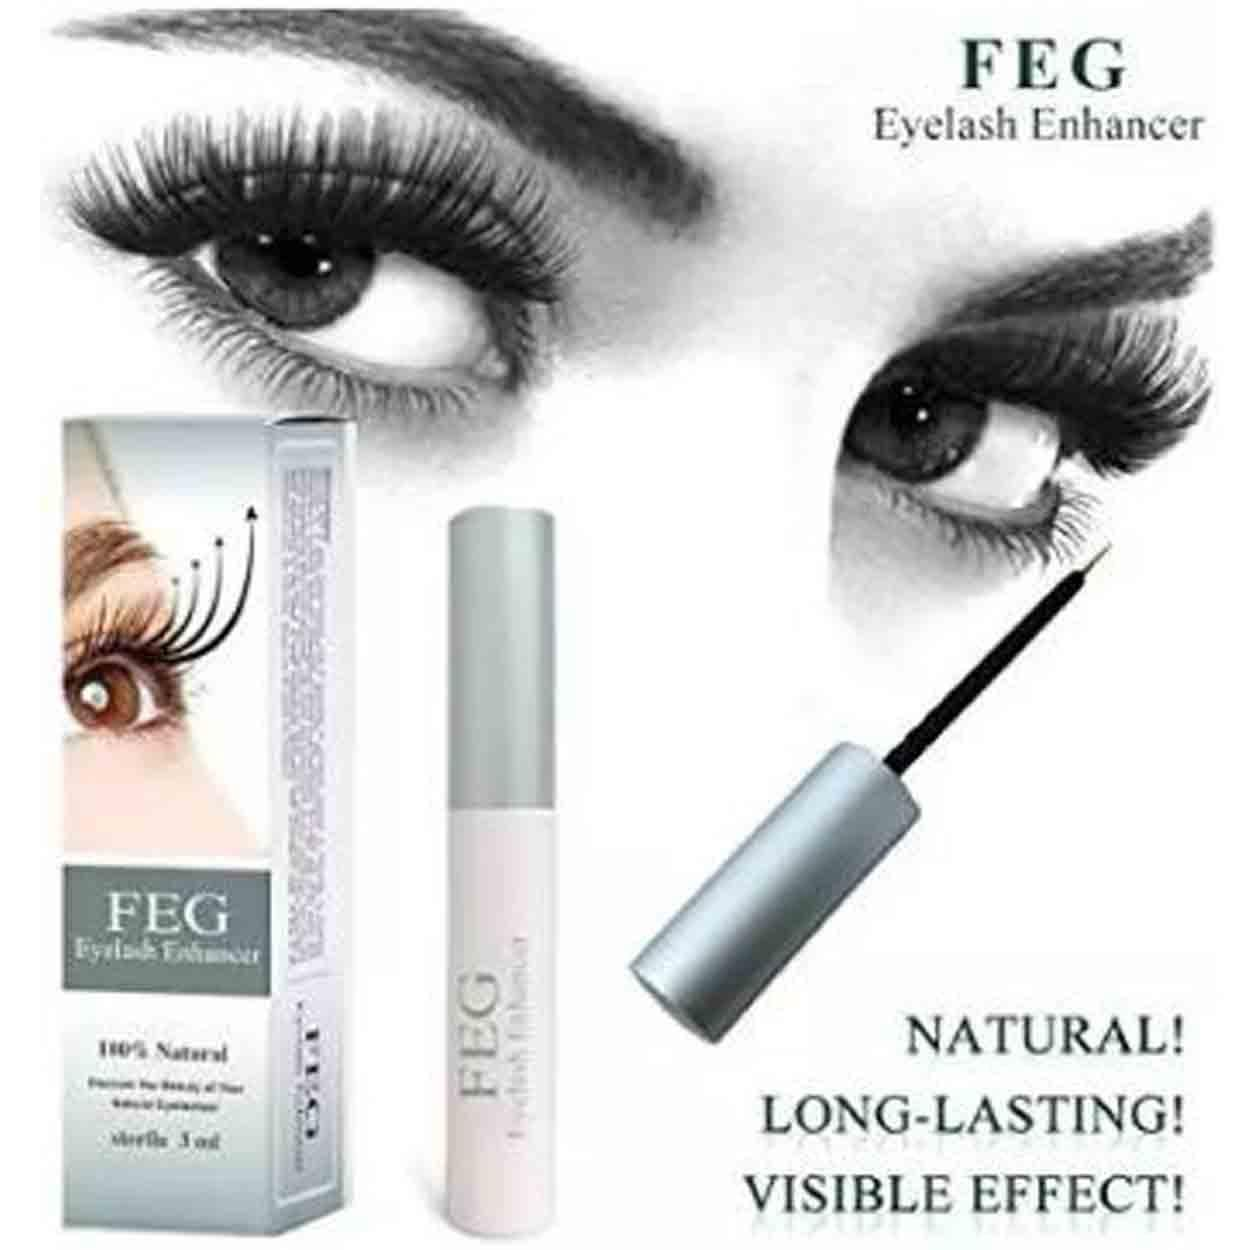 FEG Eyelash Enhancer Eye Lash Rapid Growth Serum Liquid 100% Natural 3ml (Black) Philippines